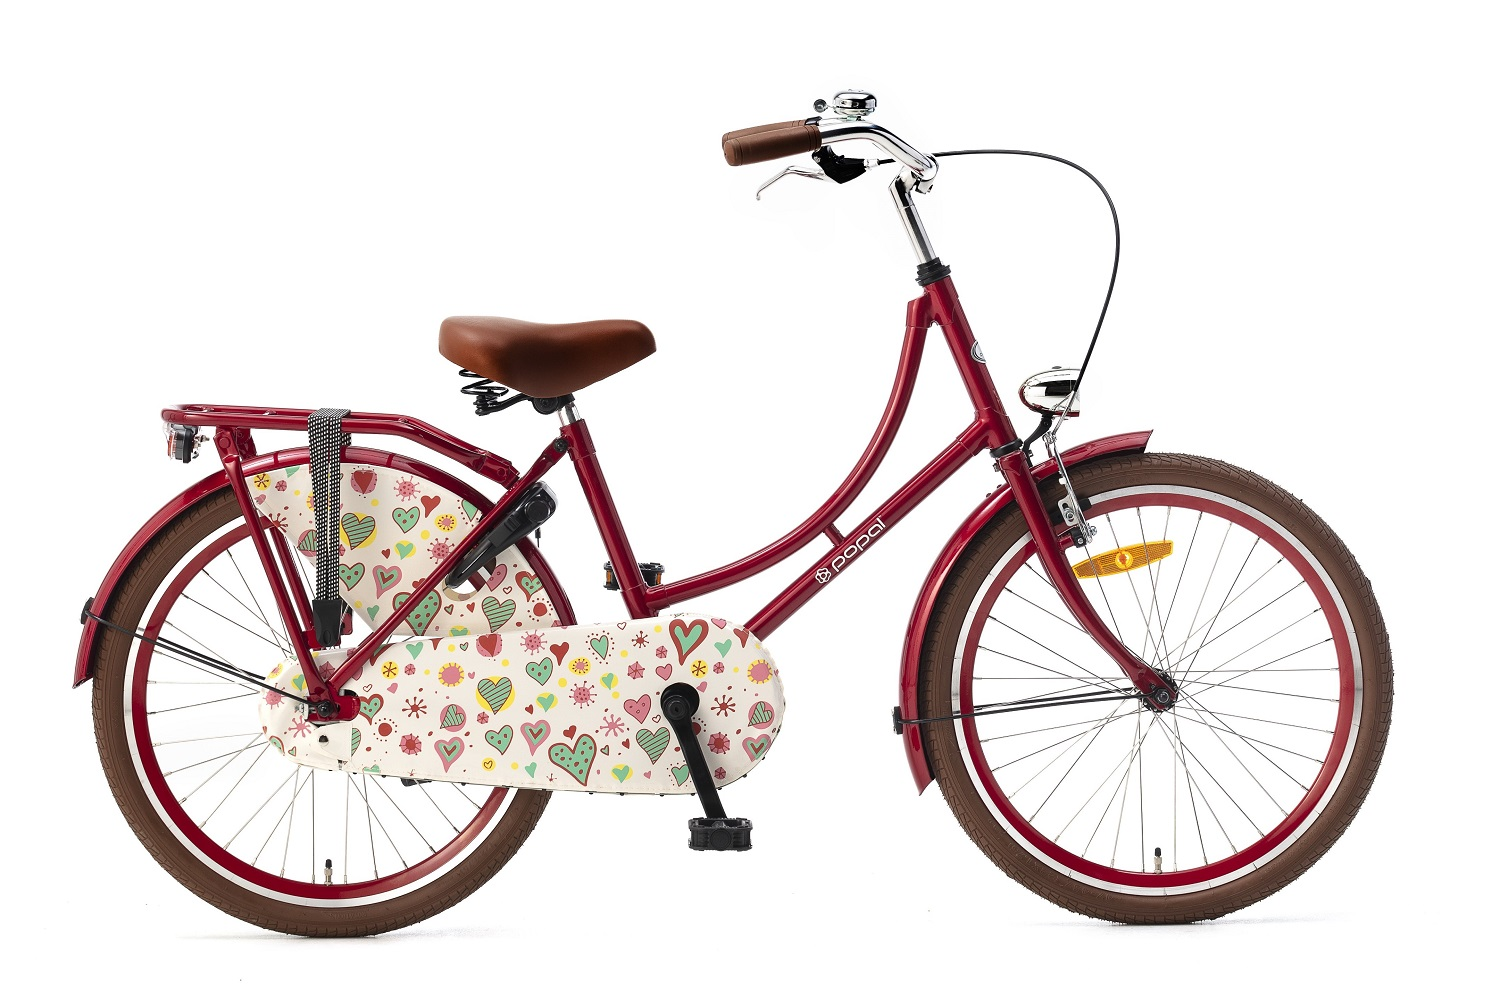 Popal Omafiets 22 inch rood